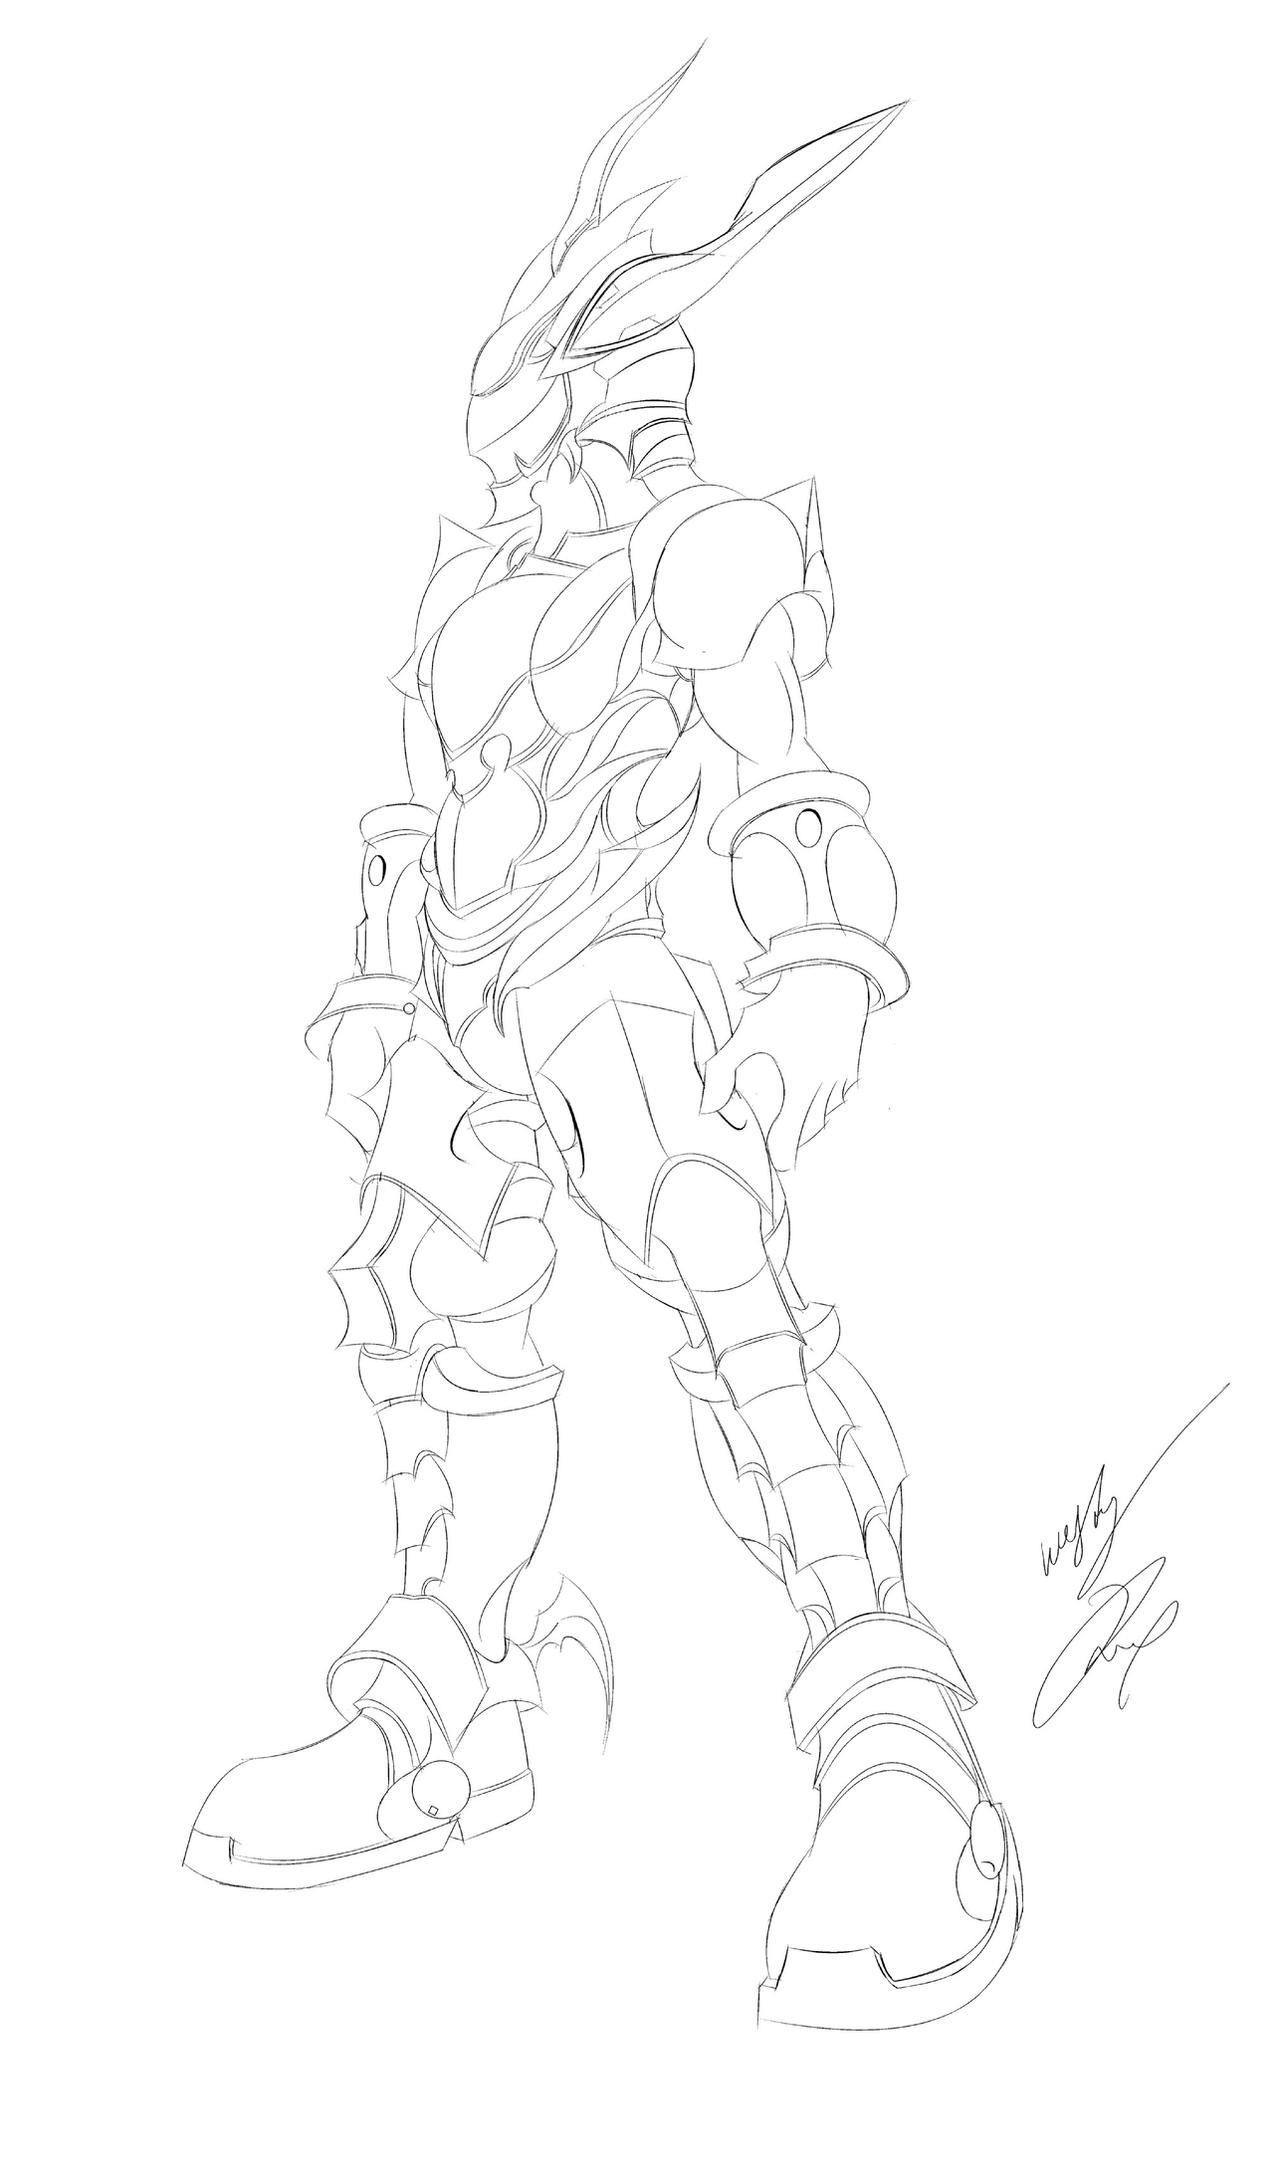 Line Drawing Knight : Bahamut knight line art by gunzcon on deviantart